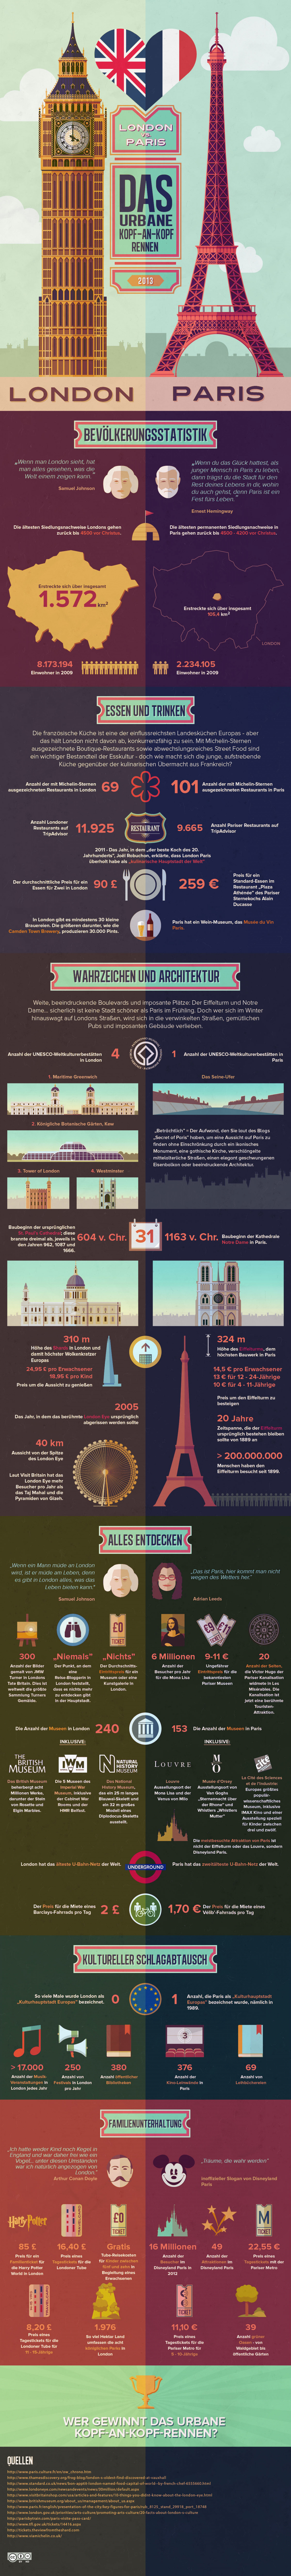 Paris vs. London. Das Städteduell. Infographic